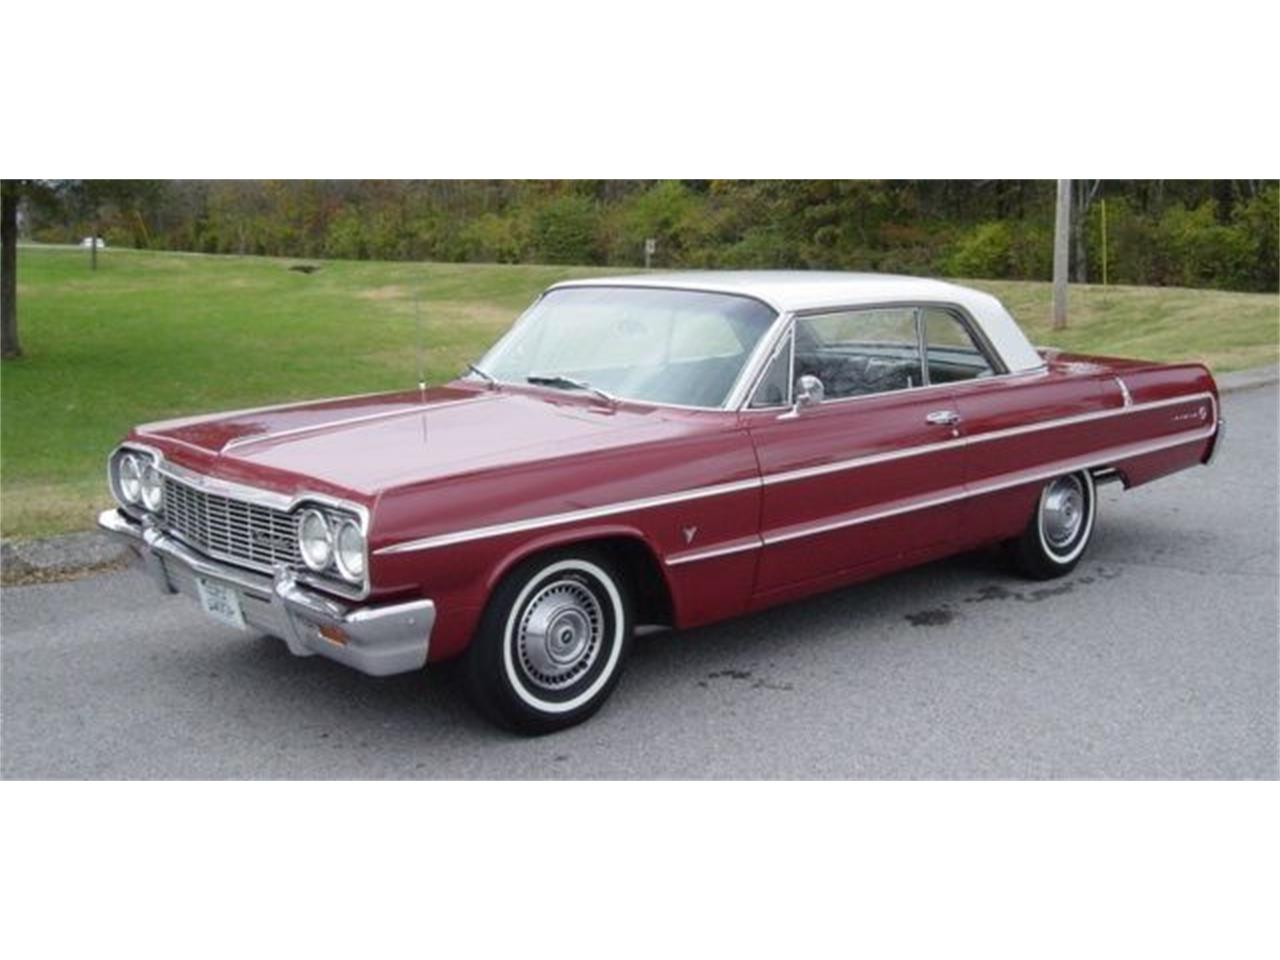 1964 Chevrolet Impala (CC-1422331) for sale in Hendersonville, Tennessee